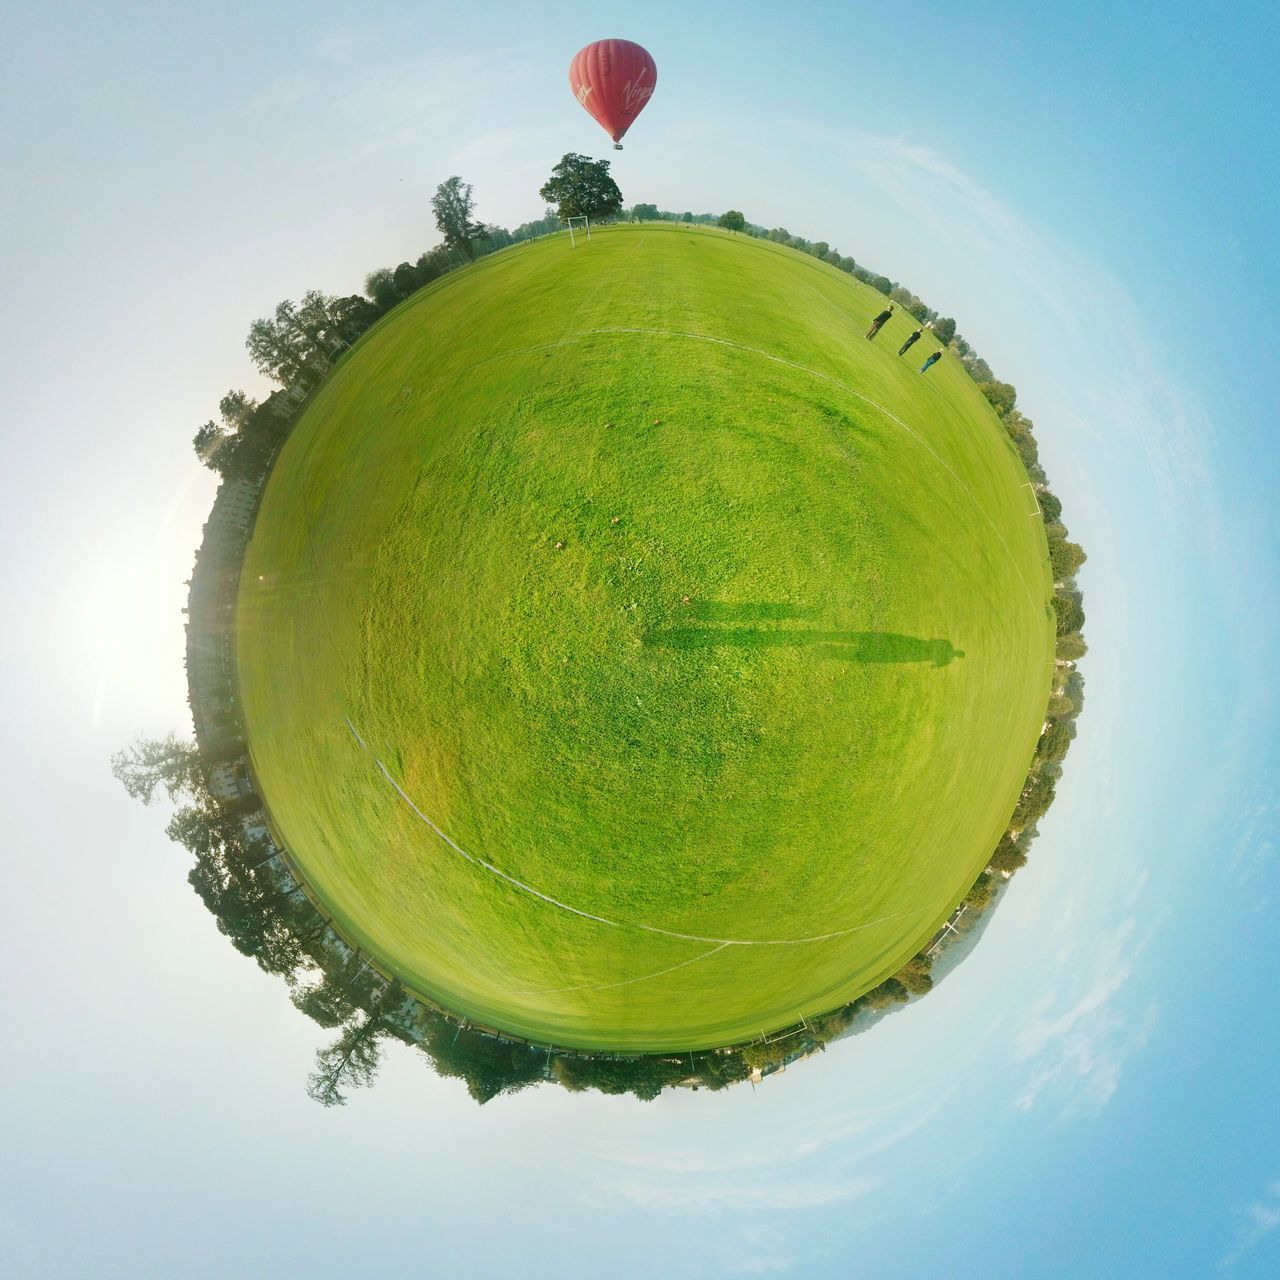 Balloon Leaving A Tiny Planet. Tree Sky Auto Post Production Filter Fish-eye Lens Hot Air Balloon Freshness Circle Floating Day Nature Large Scenics Majestic Geometric Shape Vacations First Eyeem Photo Tinyplanet Tinyplanetfx Hot Air Balloons Balloons Summer Blue Sky Abstract Perspective